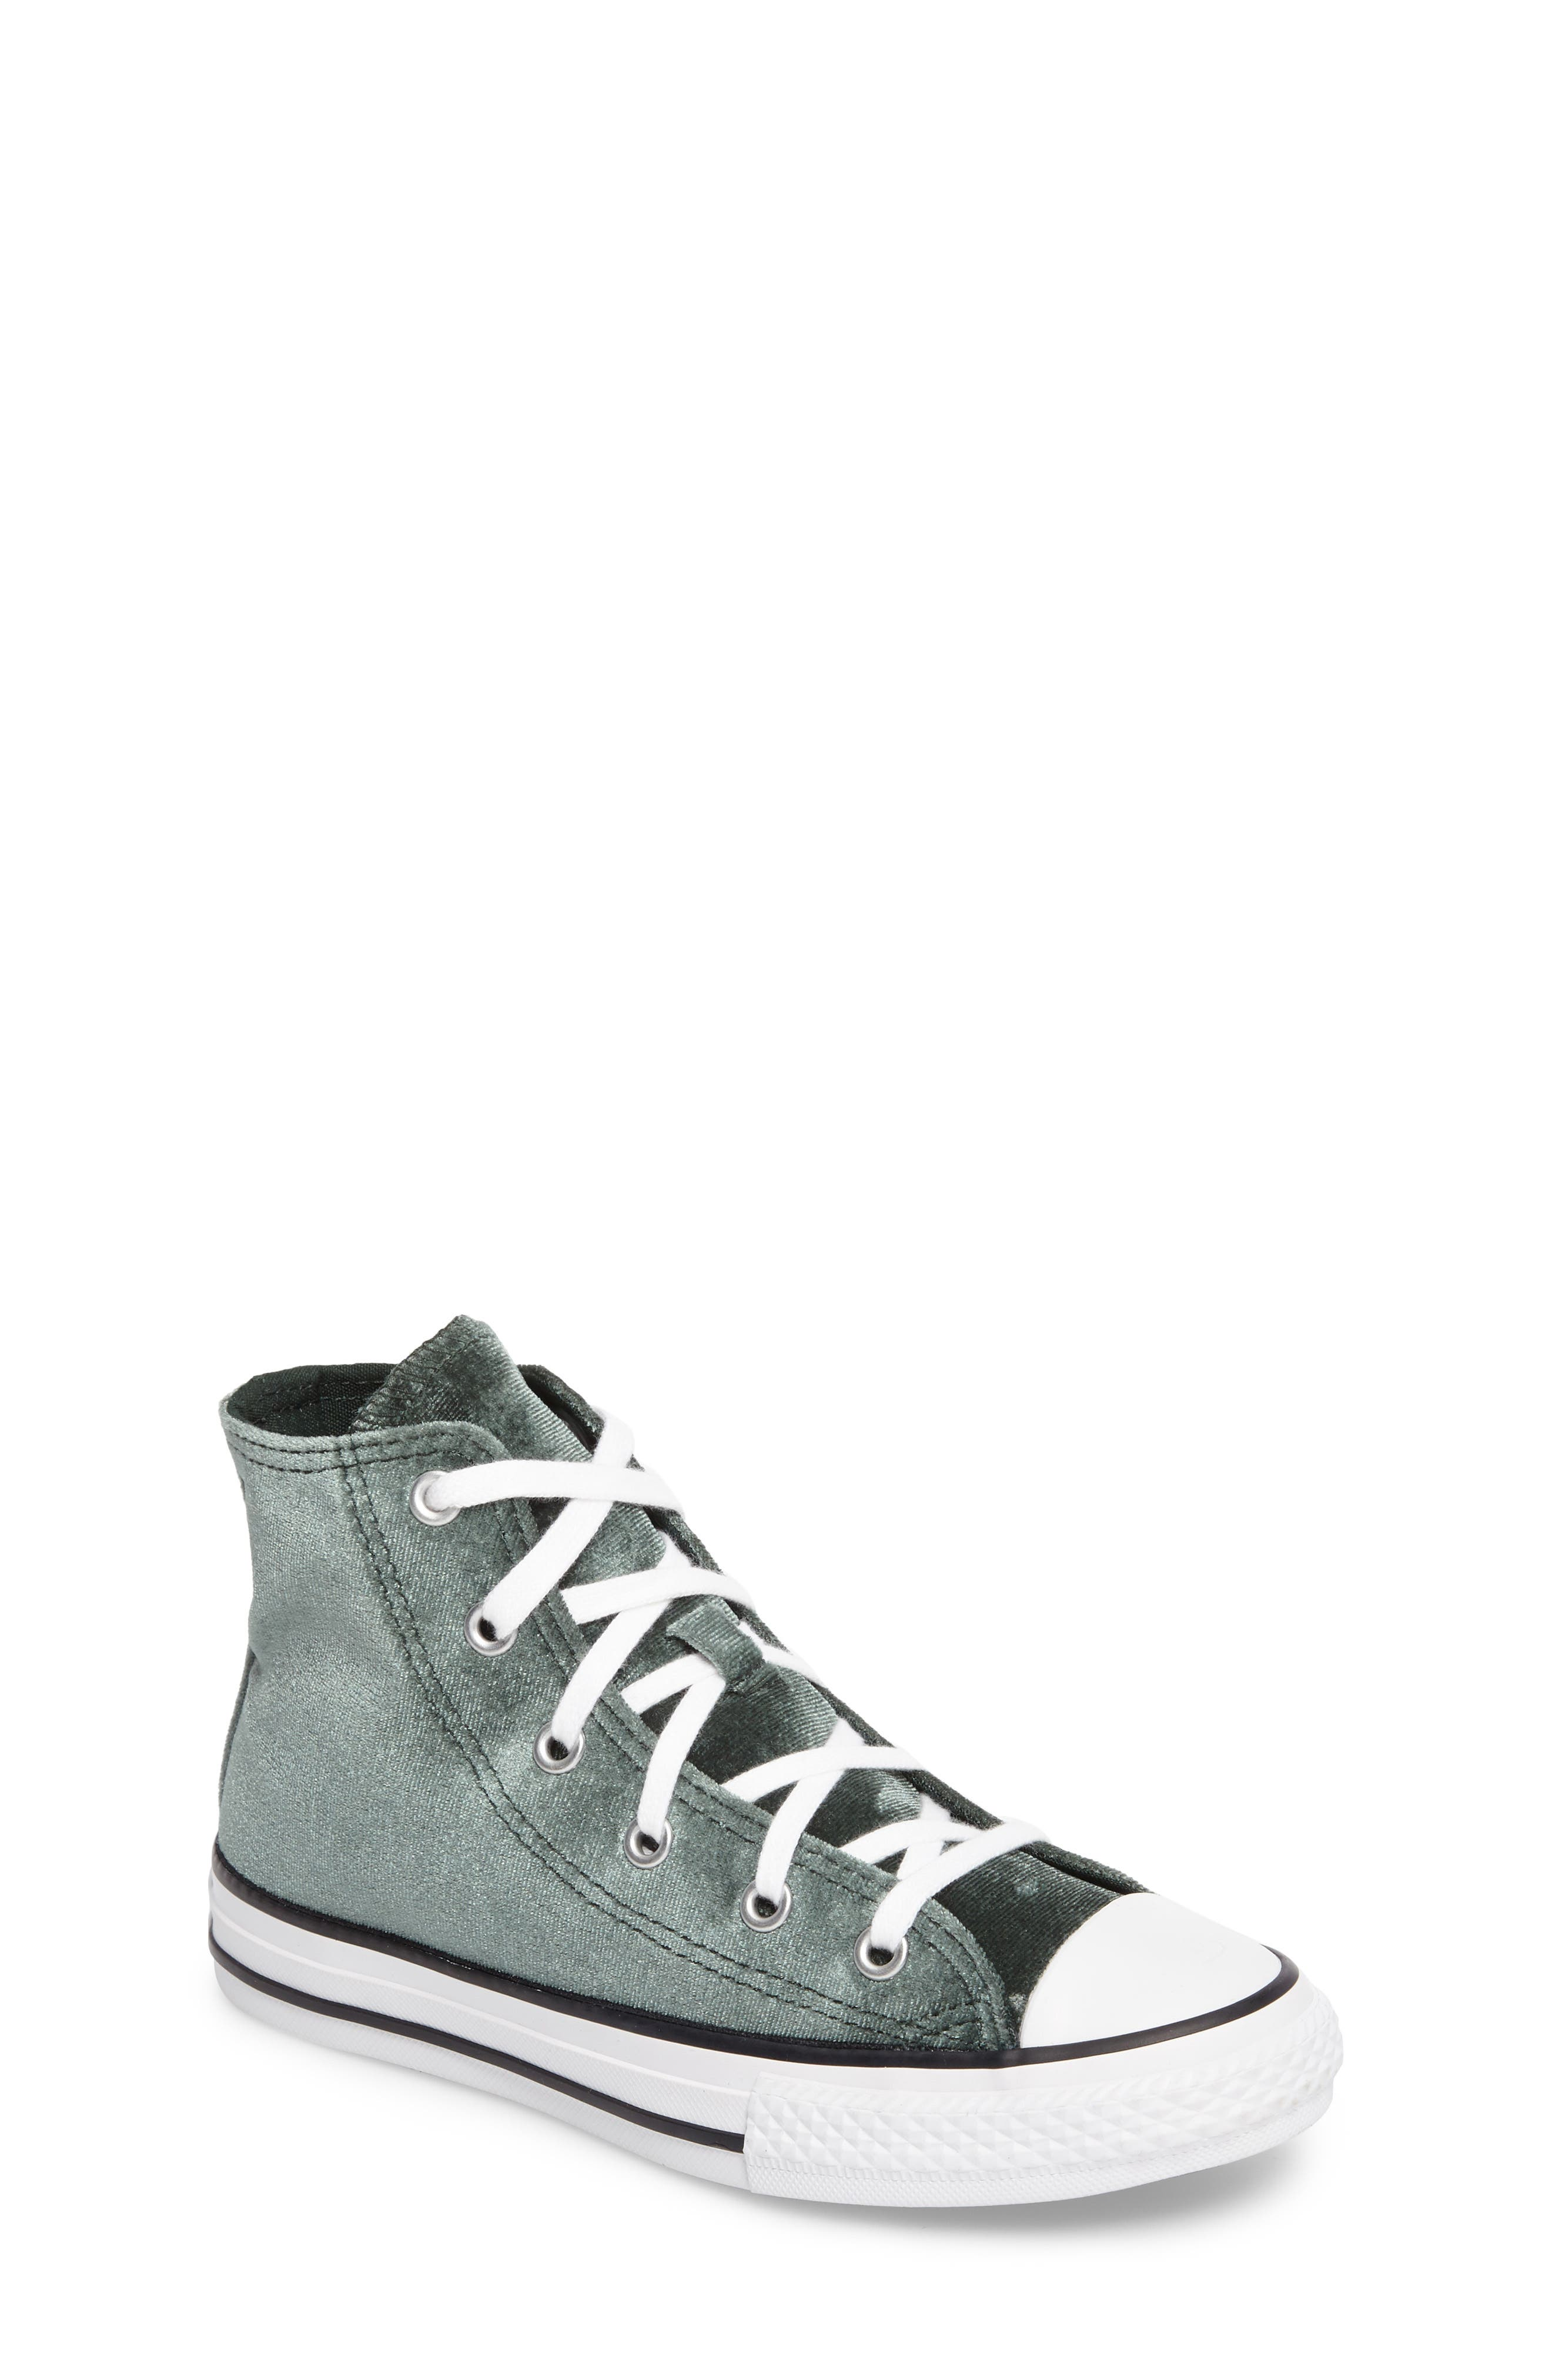 Chuck Taylor<sup>®</sup> All Star<sup>®</sup> Velvet High Top Sneaker,                             Main thumbnail 1, color,                             300